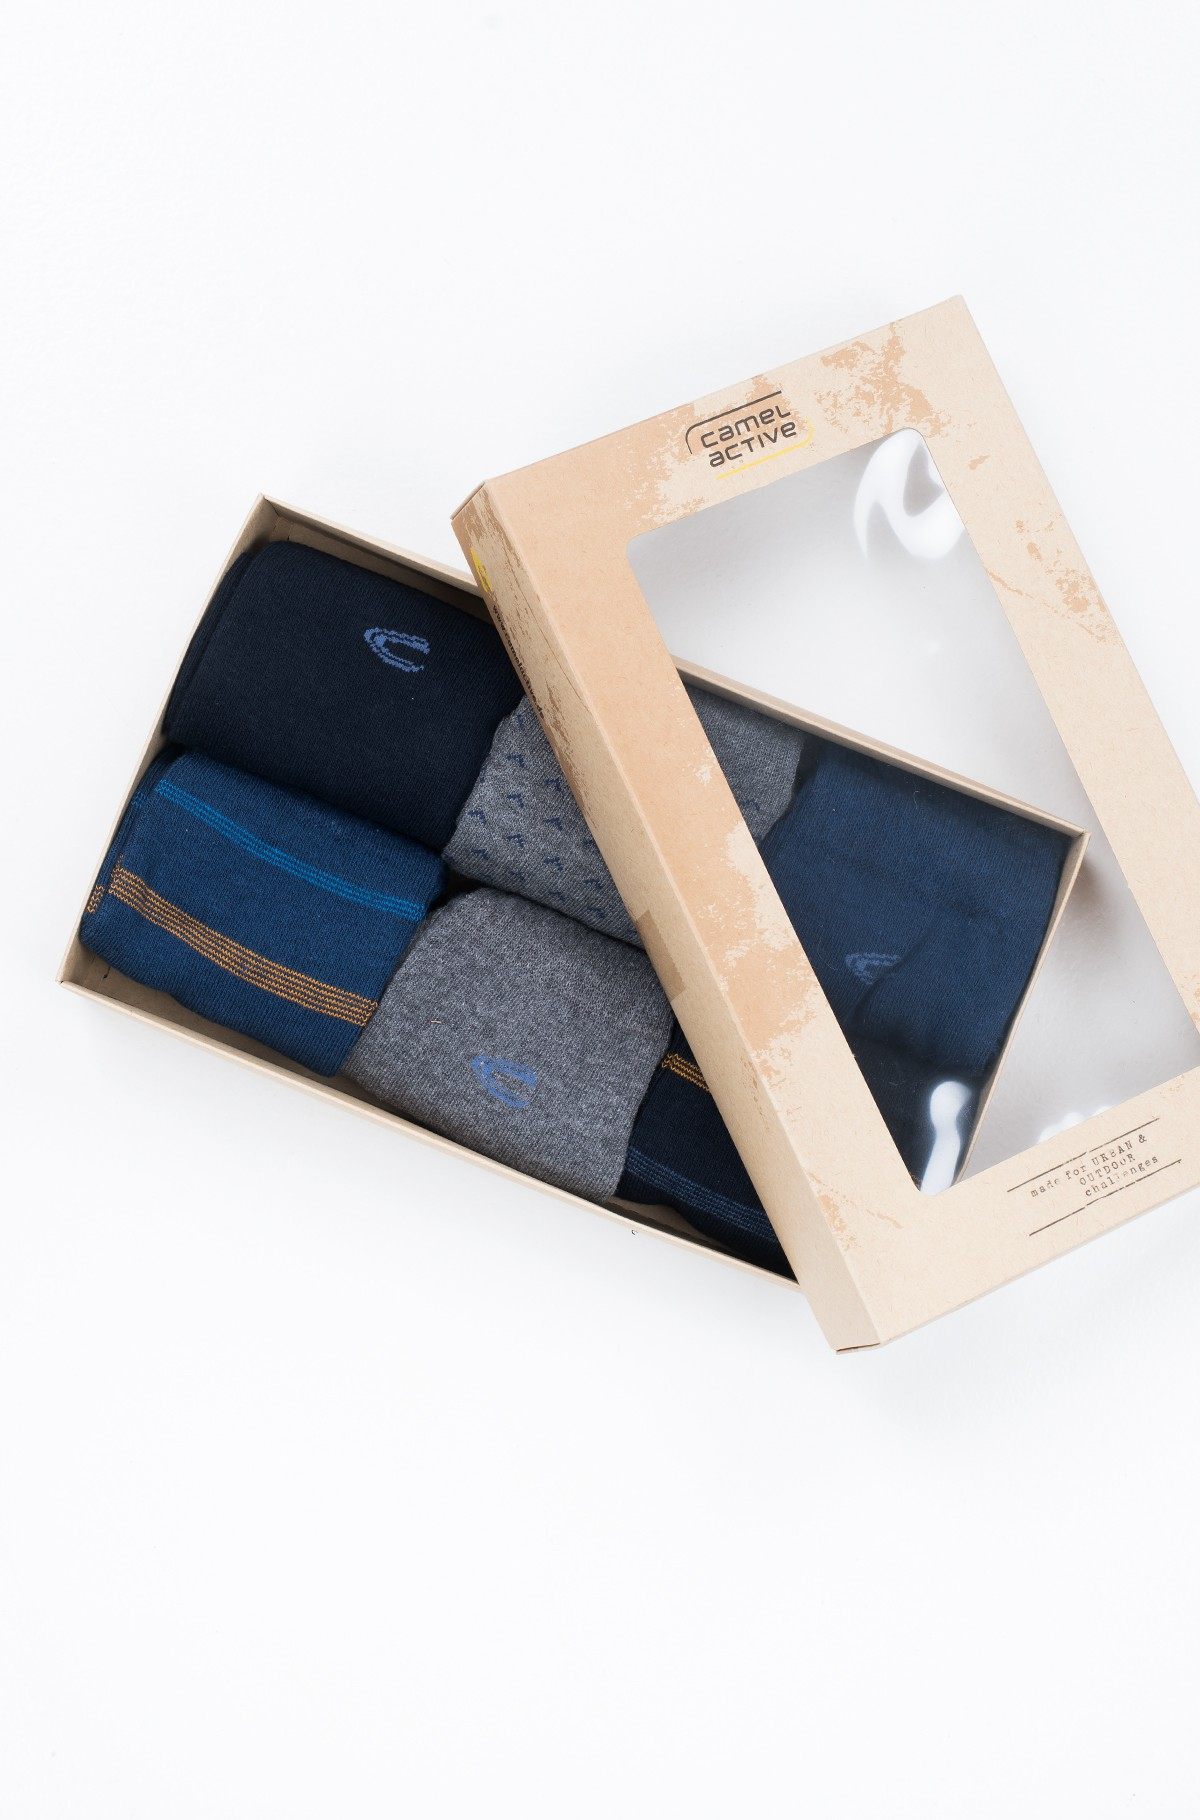 Socks in gift box 6493X-full-1